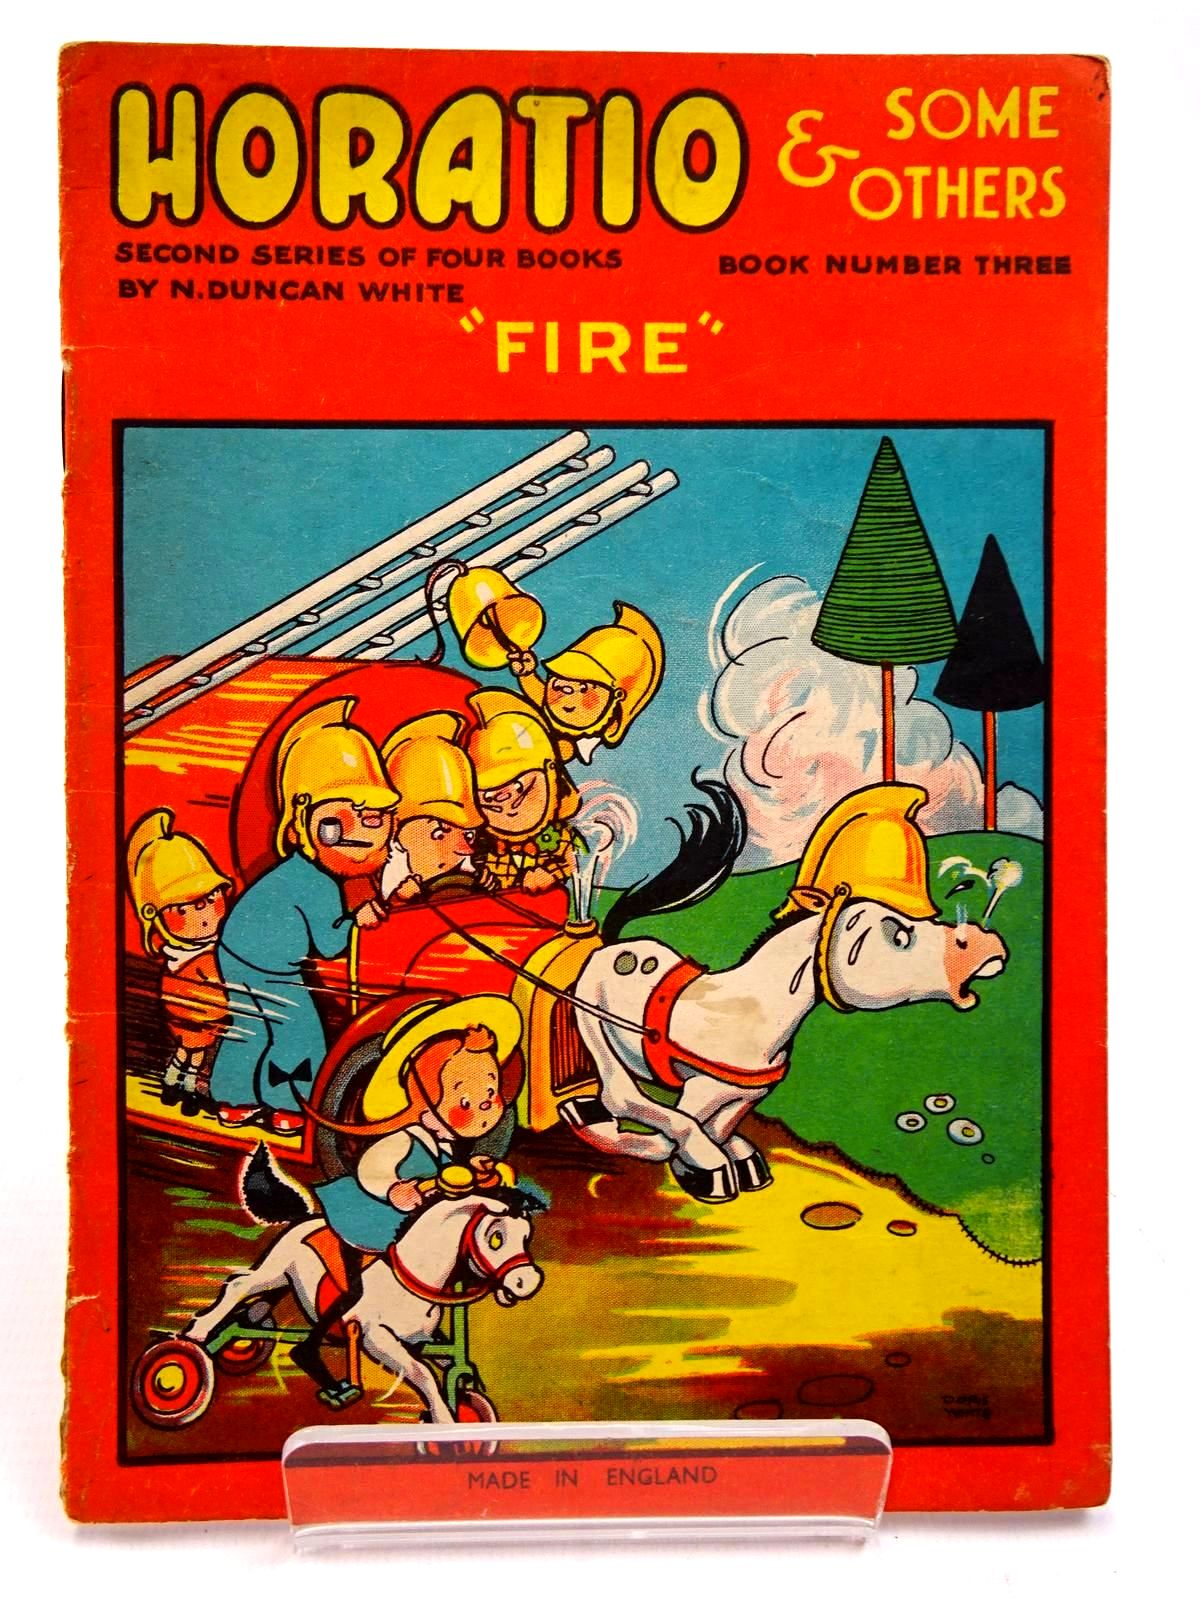 """Photo of HORATIO & SOME OTHERS BOOK NUMBER THREE (SECOND SERIES) """"FIRE"""" written by White, N. Duncan illustrated by White, Doris published by F. Levy & Co. Ltd. (STOCK CODE: 2131009)  for sale by Stella & Rose's Books"""